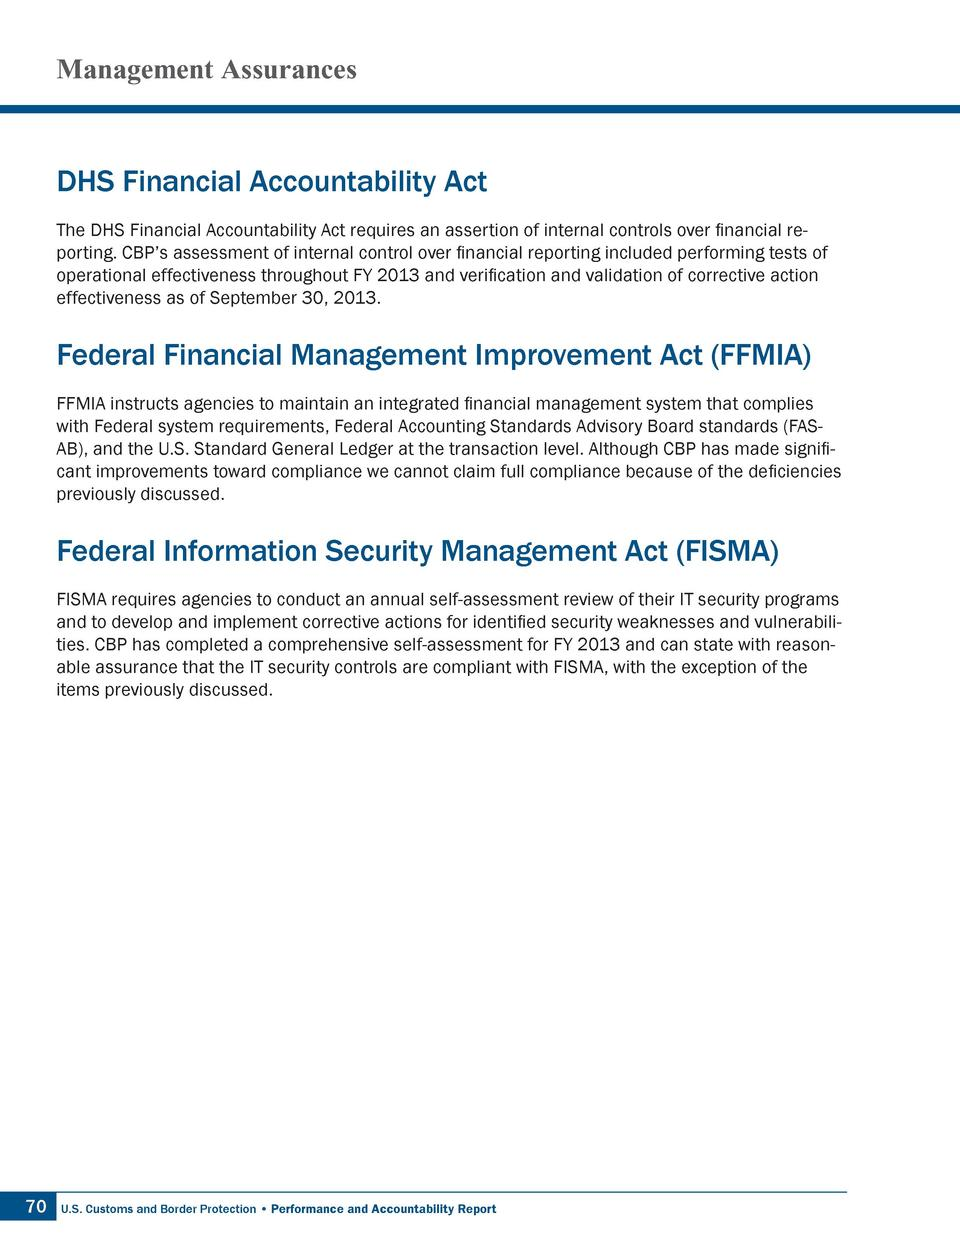 Management Assurances  DHS Financial Accountability Act The DHS Financial Accountability Act requires an assertion of inte...